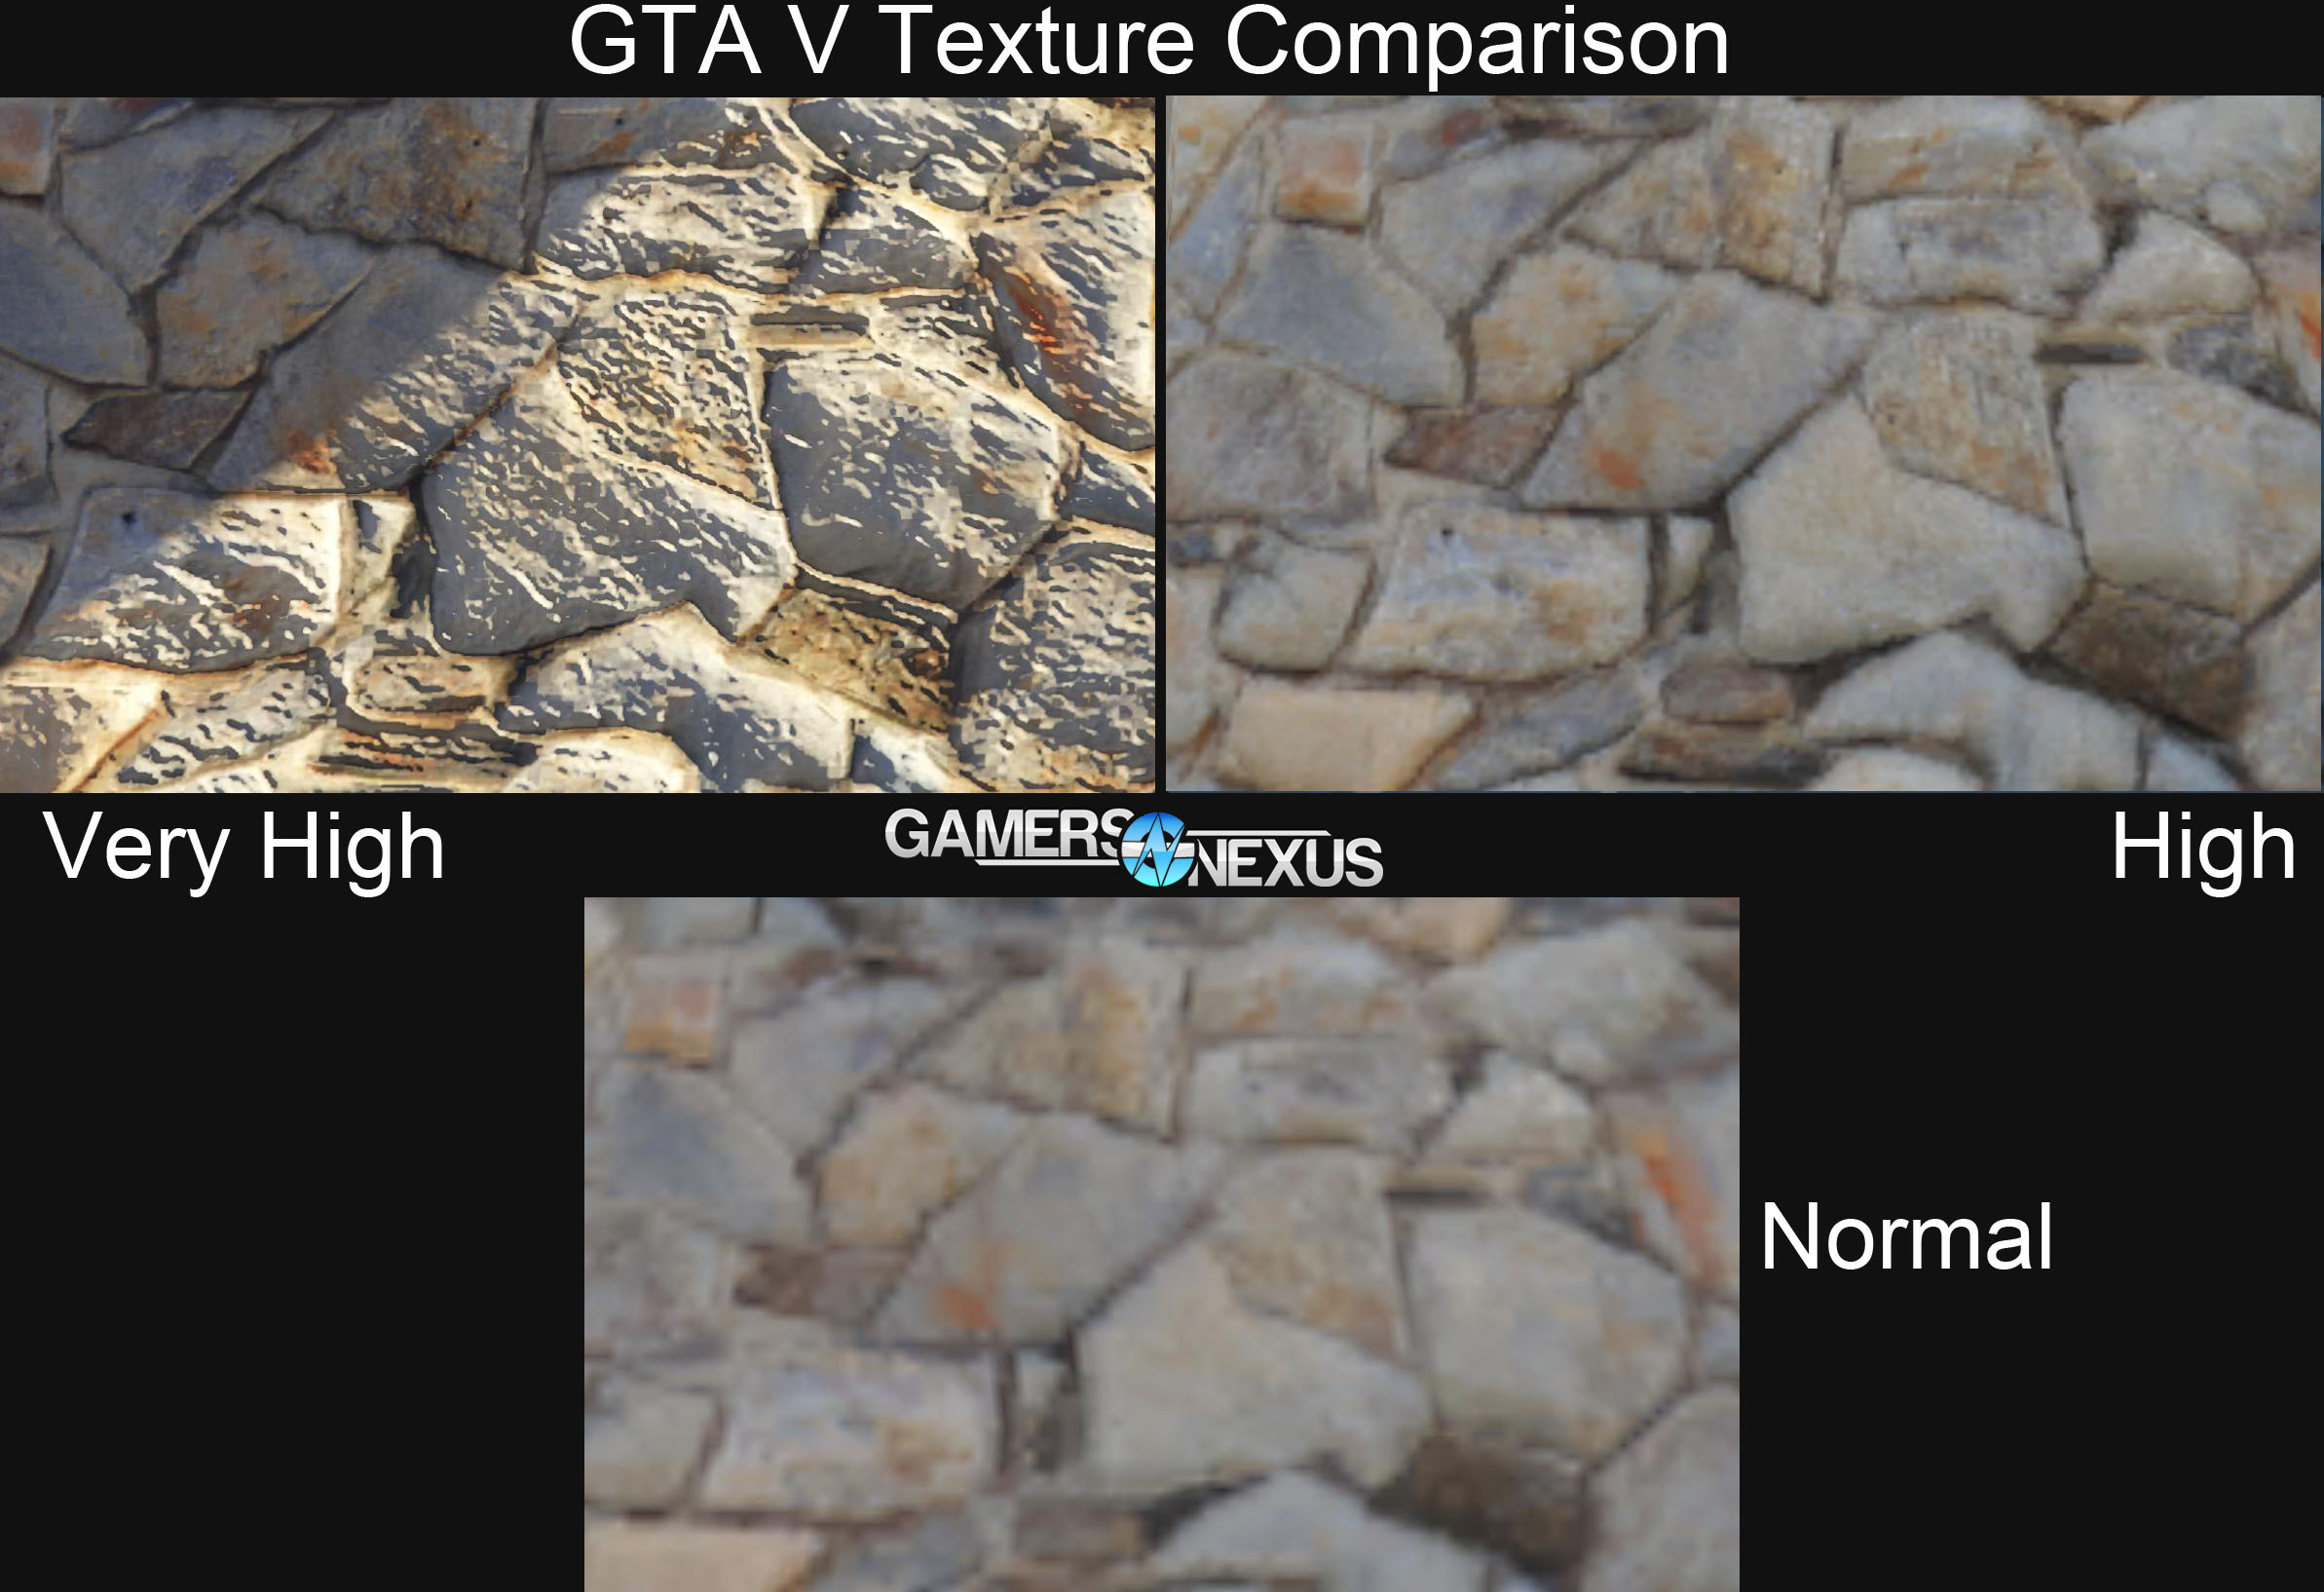 GTA V Texture Quality Screenshot Comparison & Performance